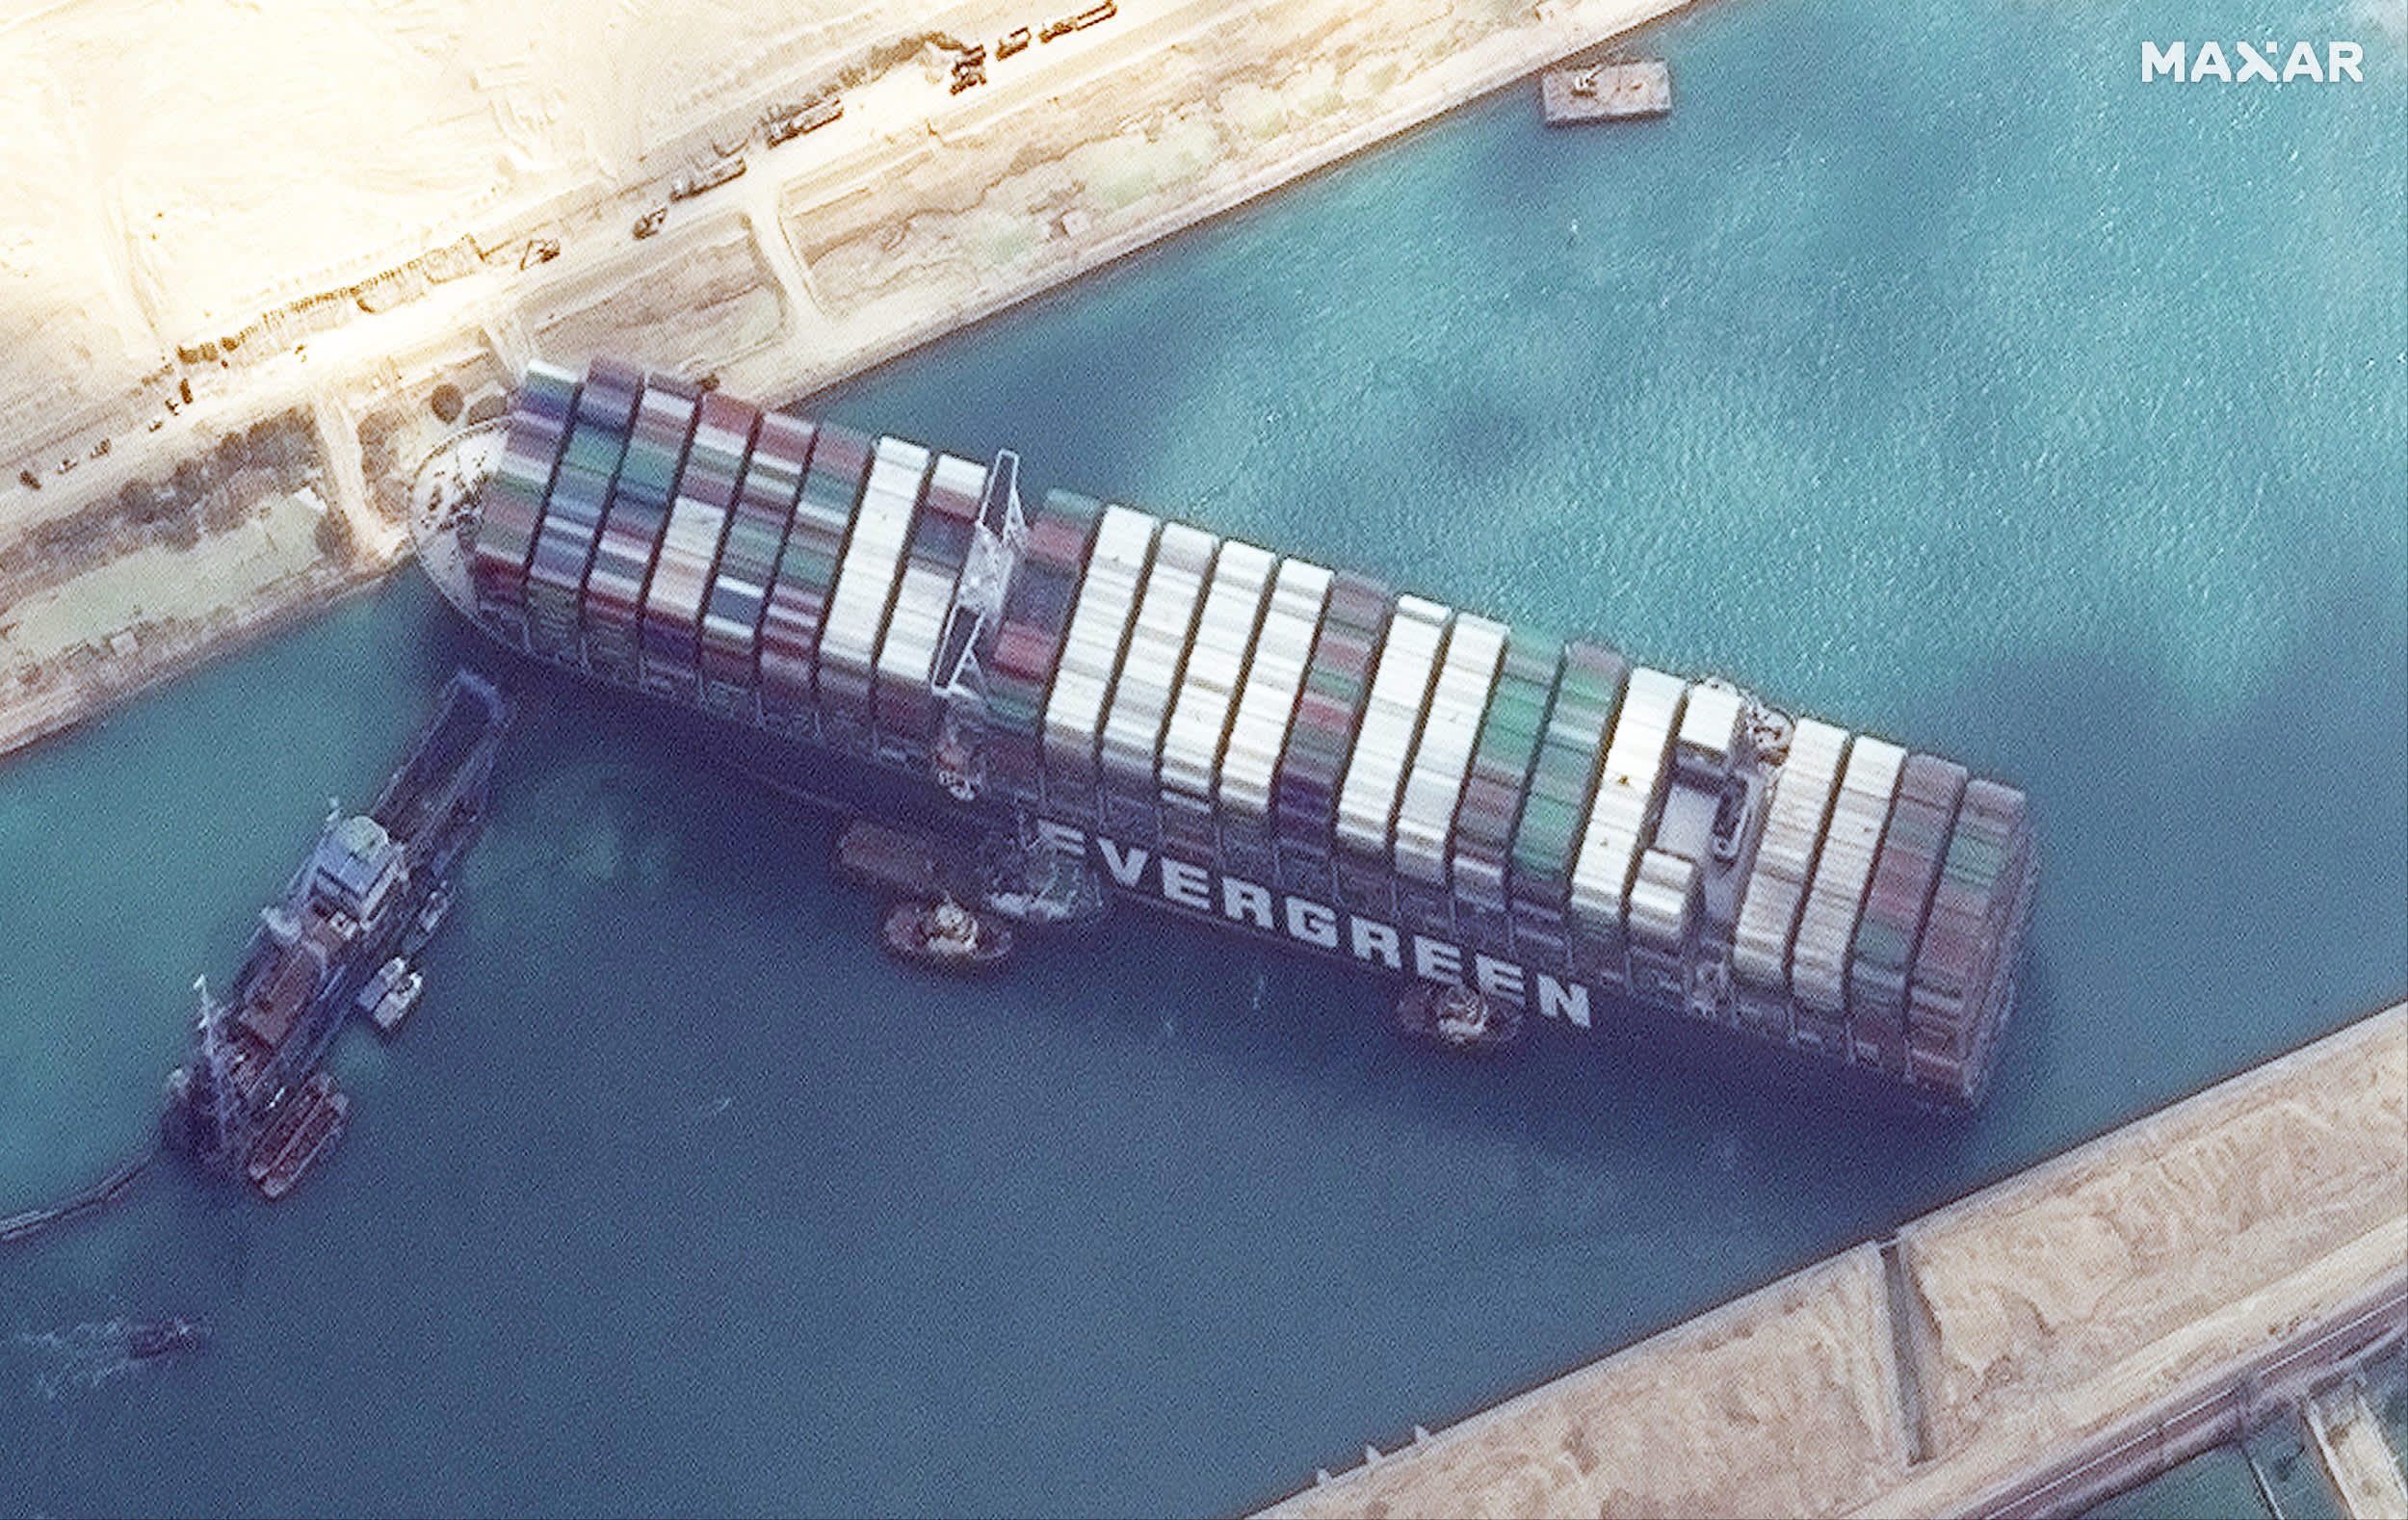 Satellite imagery shows work underway to free ship Ever Given in the Suez Canal